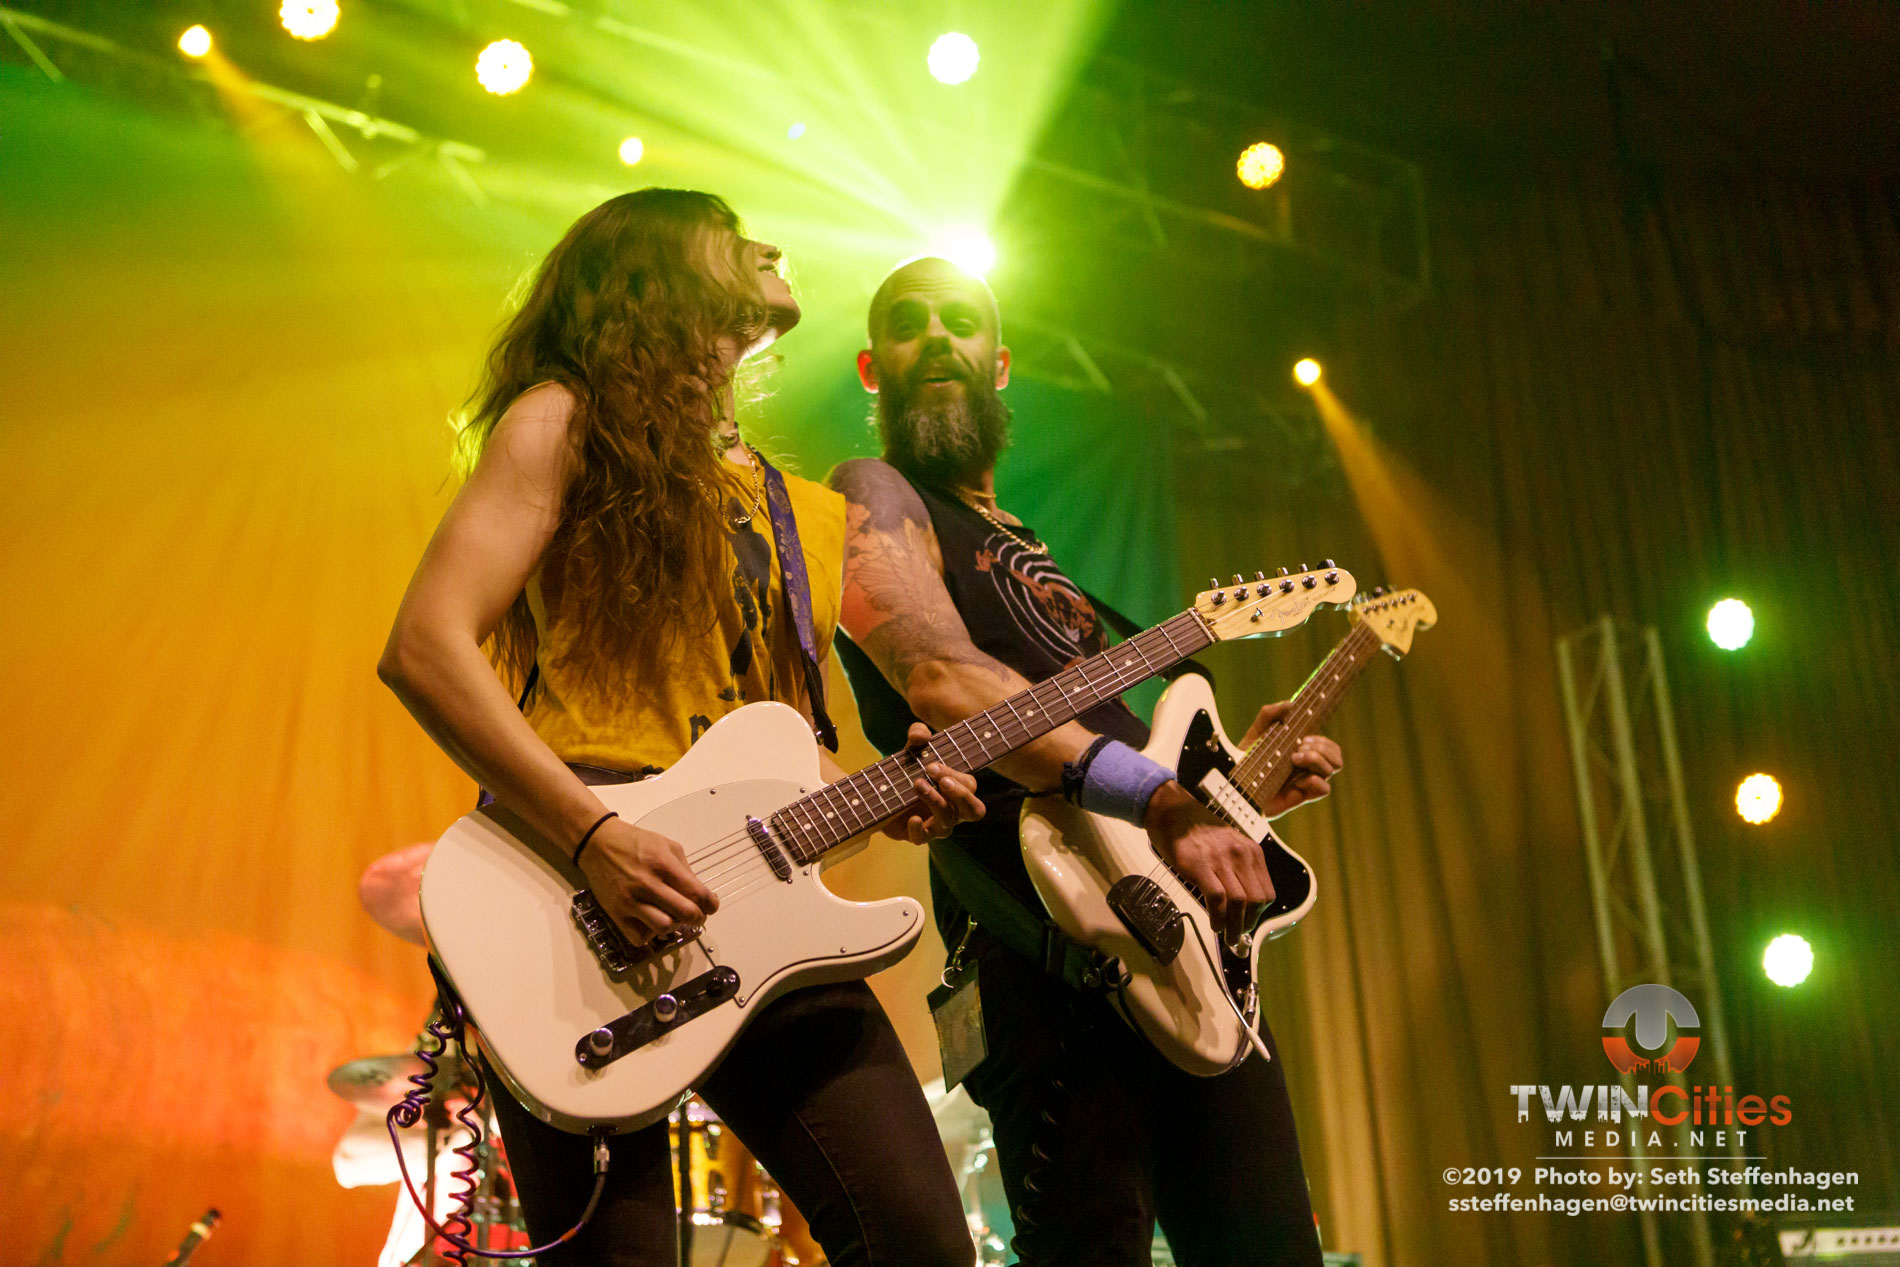 March 29, 2019 - Minneapolis, Minnesota, United States - Baroness live in concert at the Skyway Theatre co-headling with Deafheaven along with Zeal & Ardor as the openers.  (Photo by Seth Steffenhagen/Steffenhagen Photography)